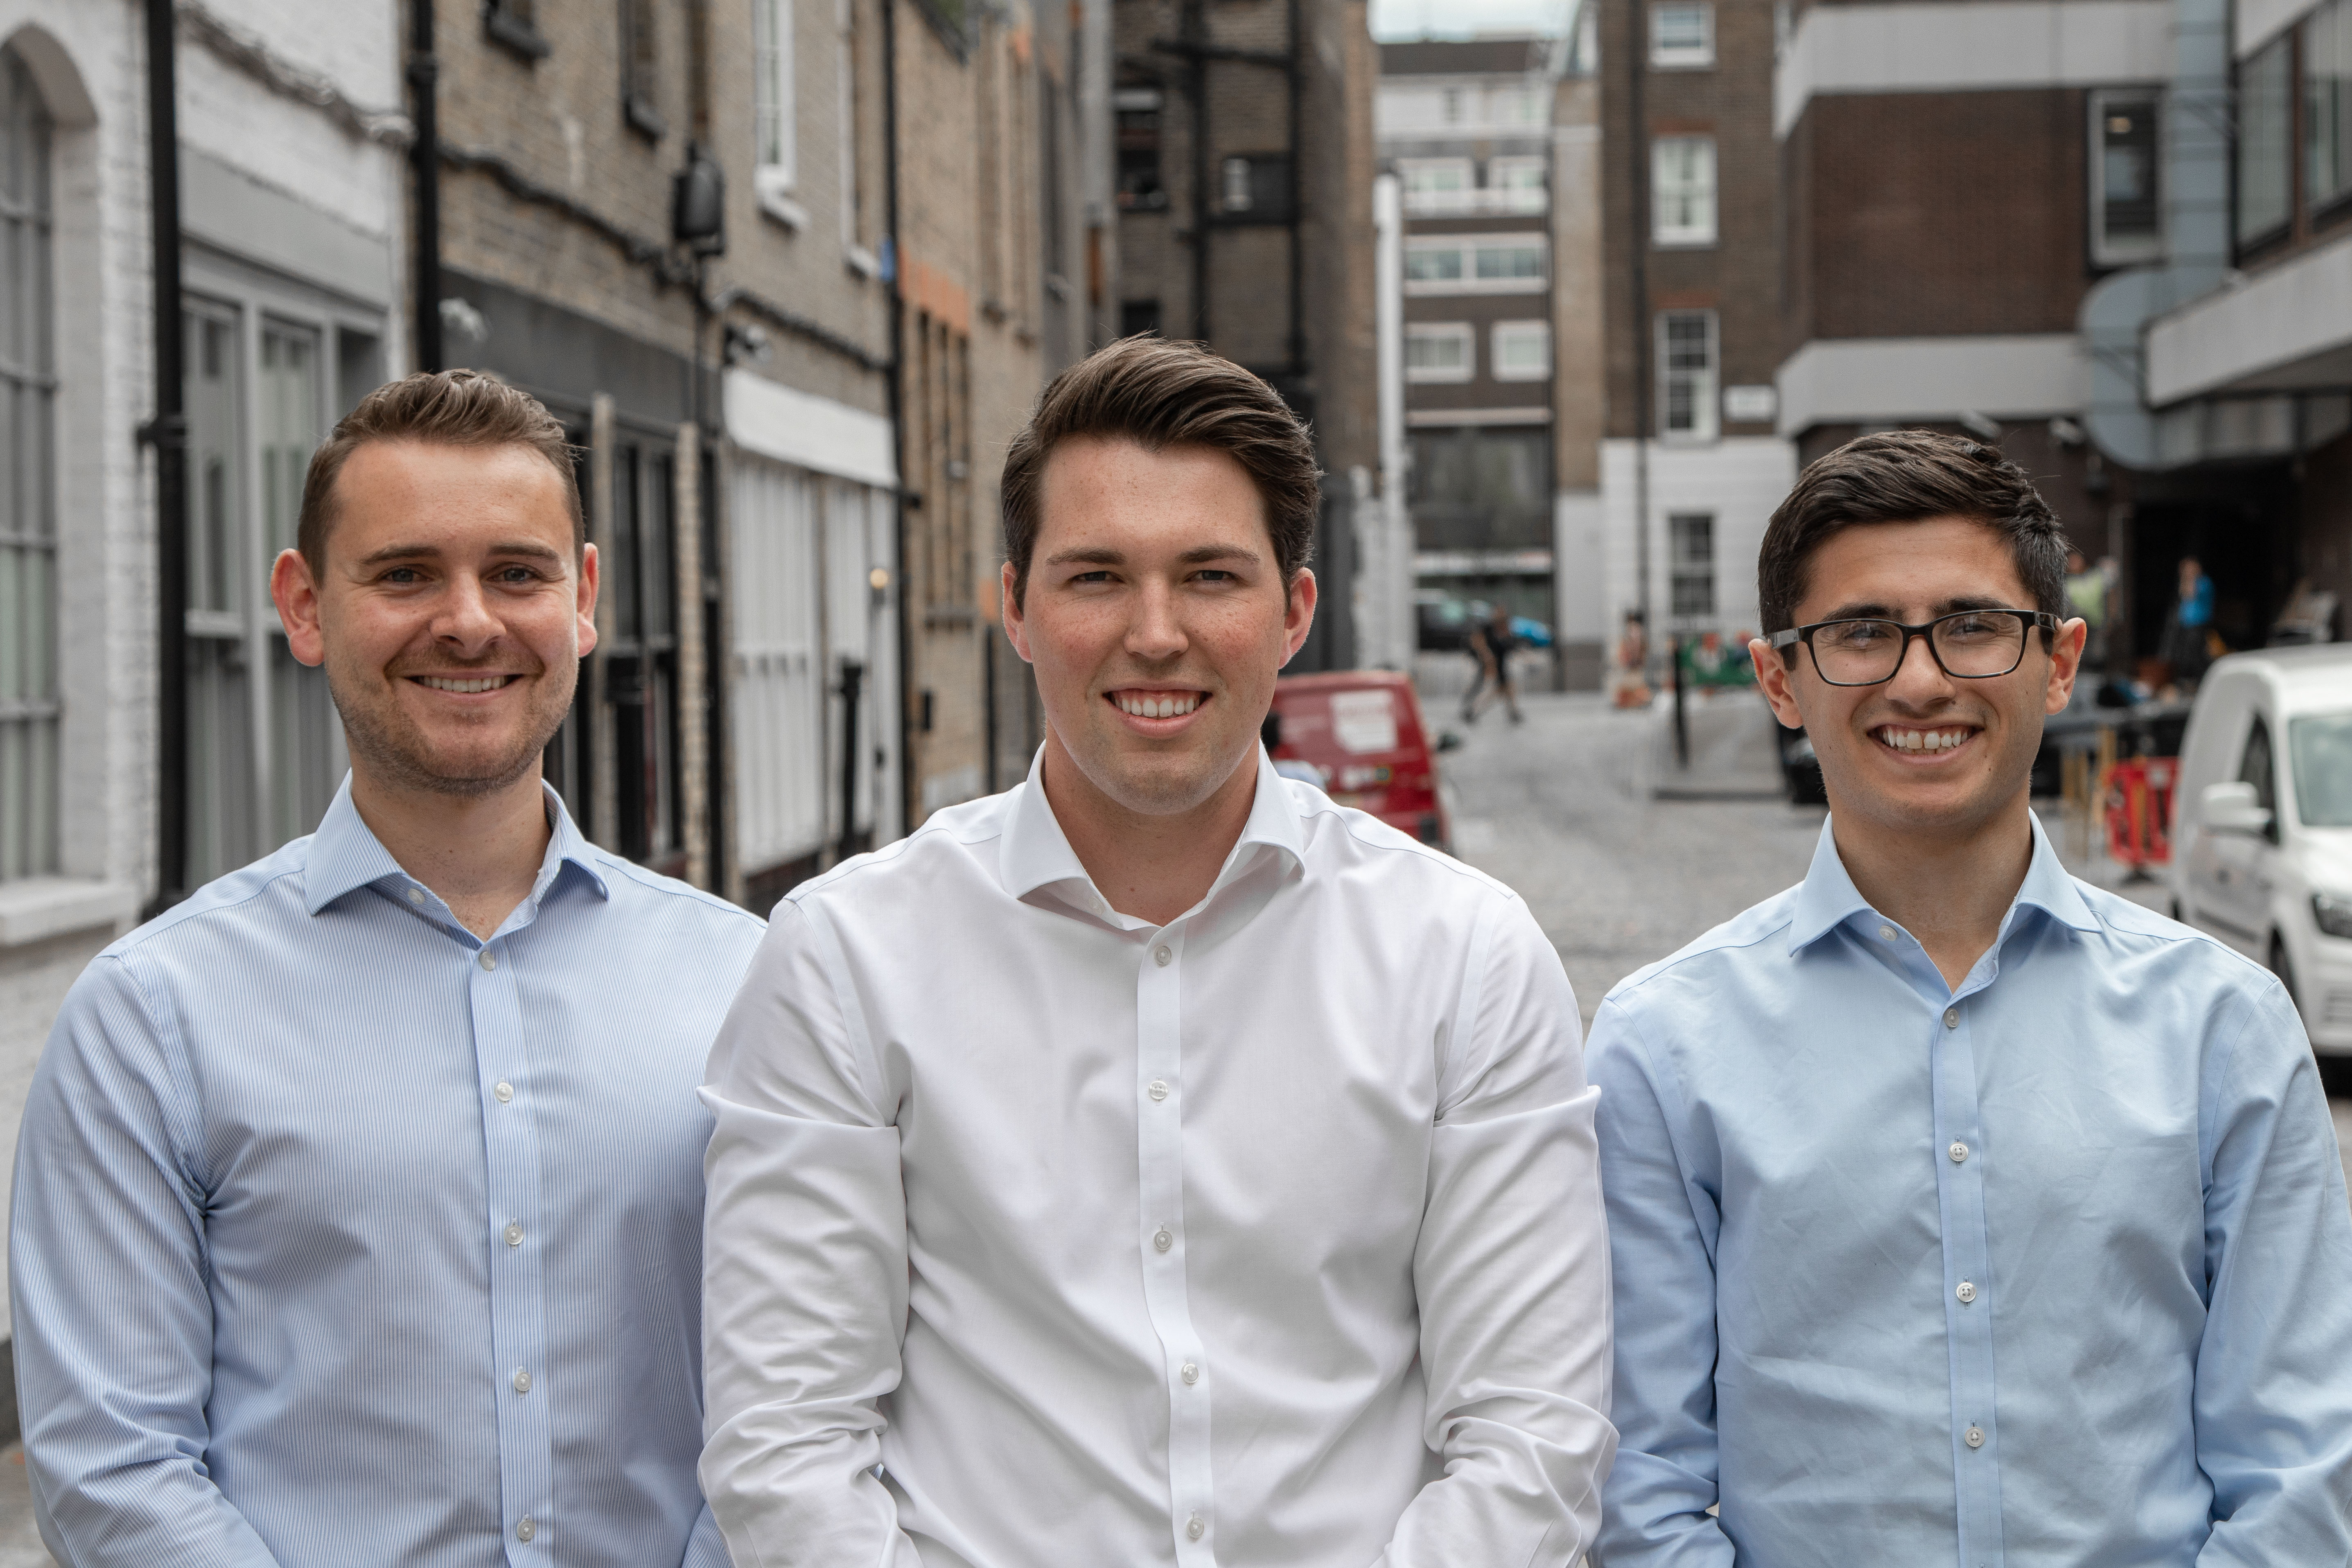 Why I'm Proud To Be a Young Financial Adviser